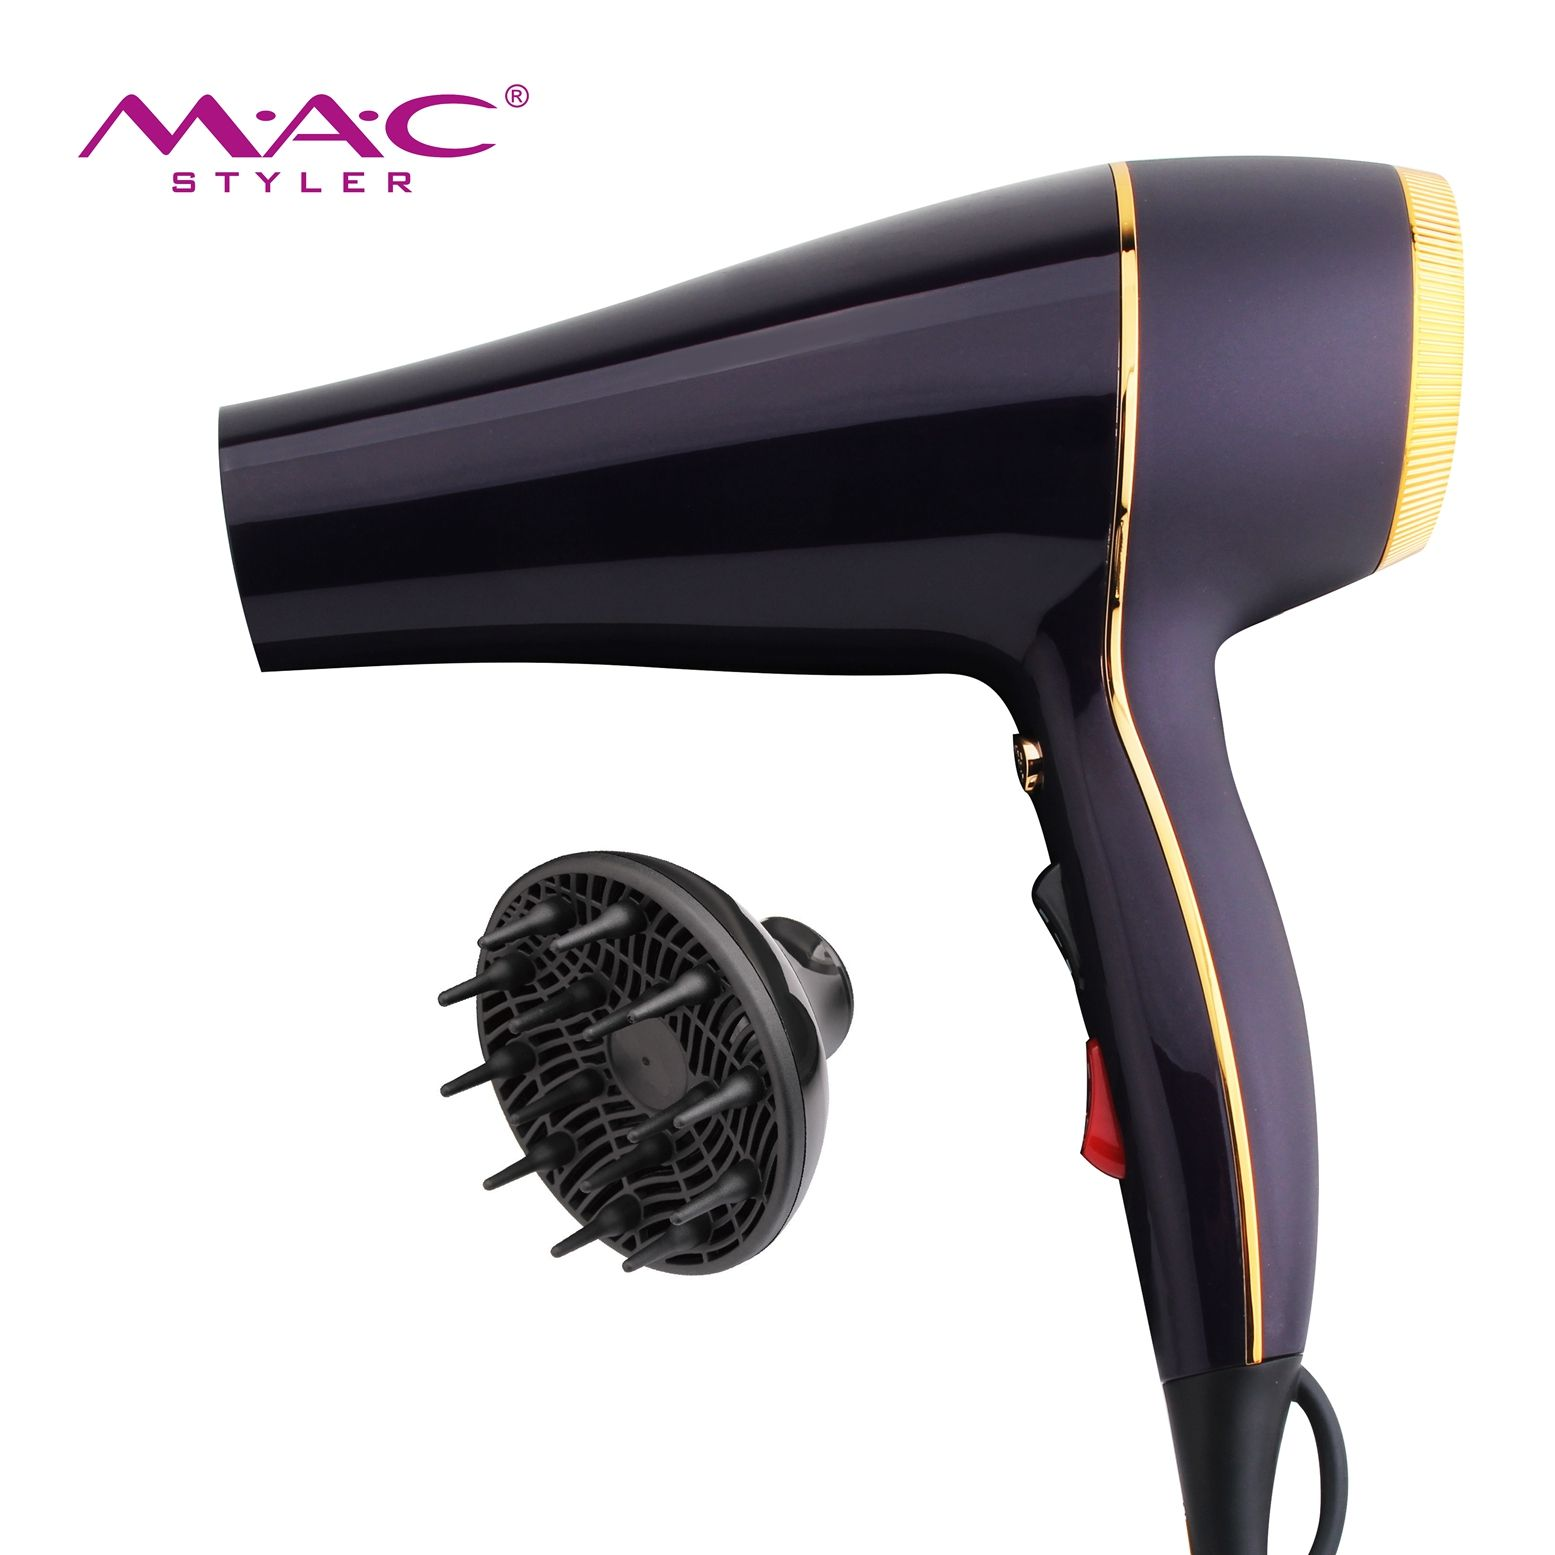 2000W Professional High Power Hair Dryer CB-N2600 CHAOBA With Over Heating Protection